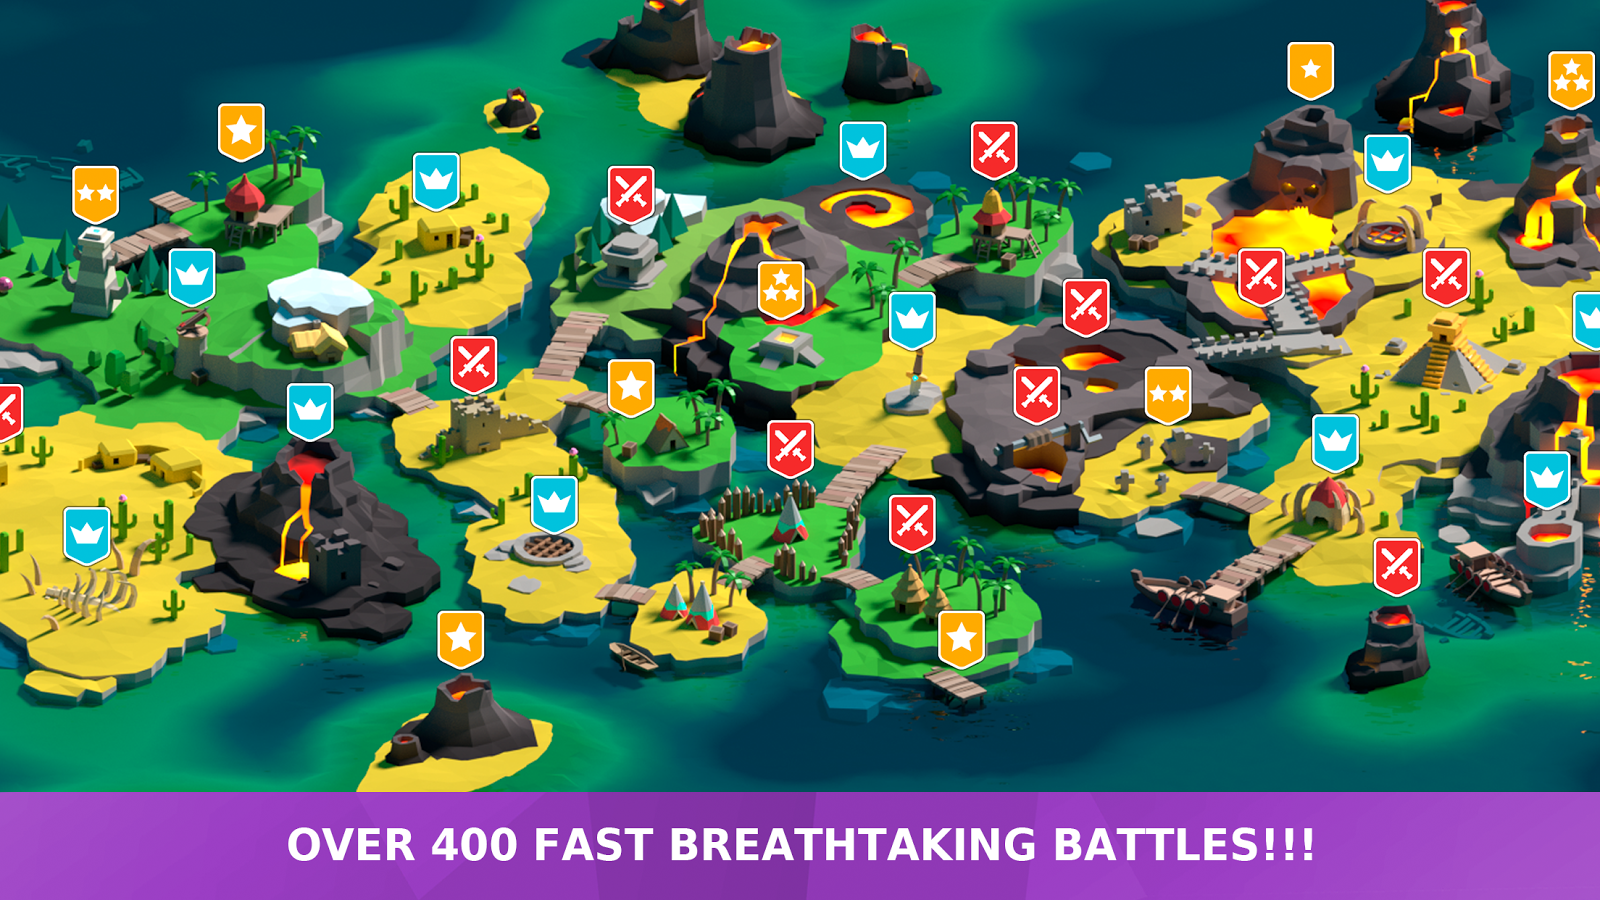 BattleTime Screenshot 10